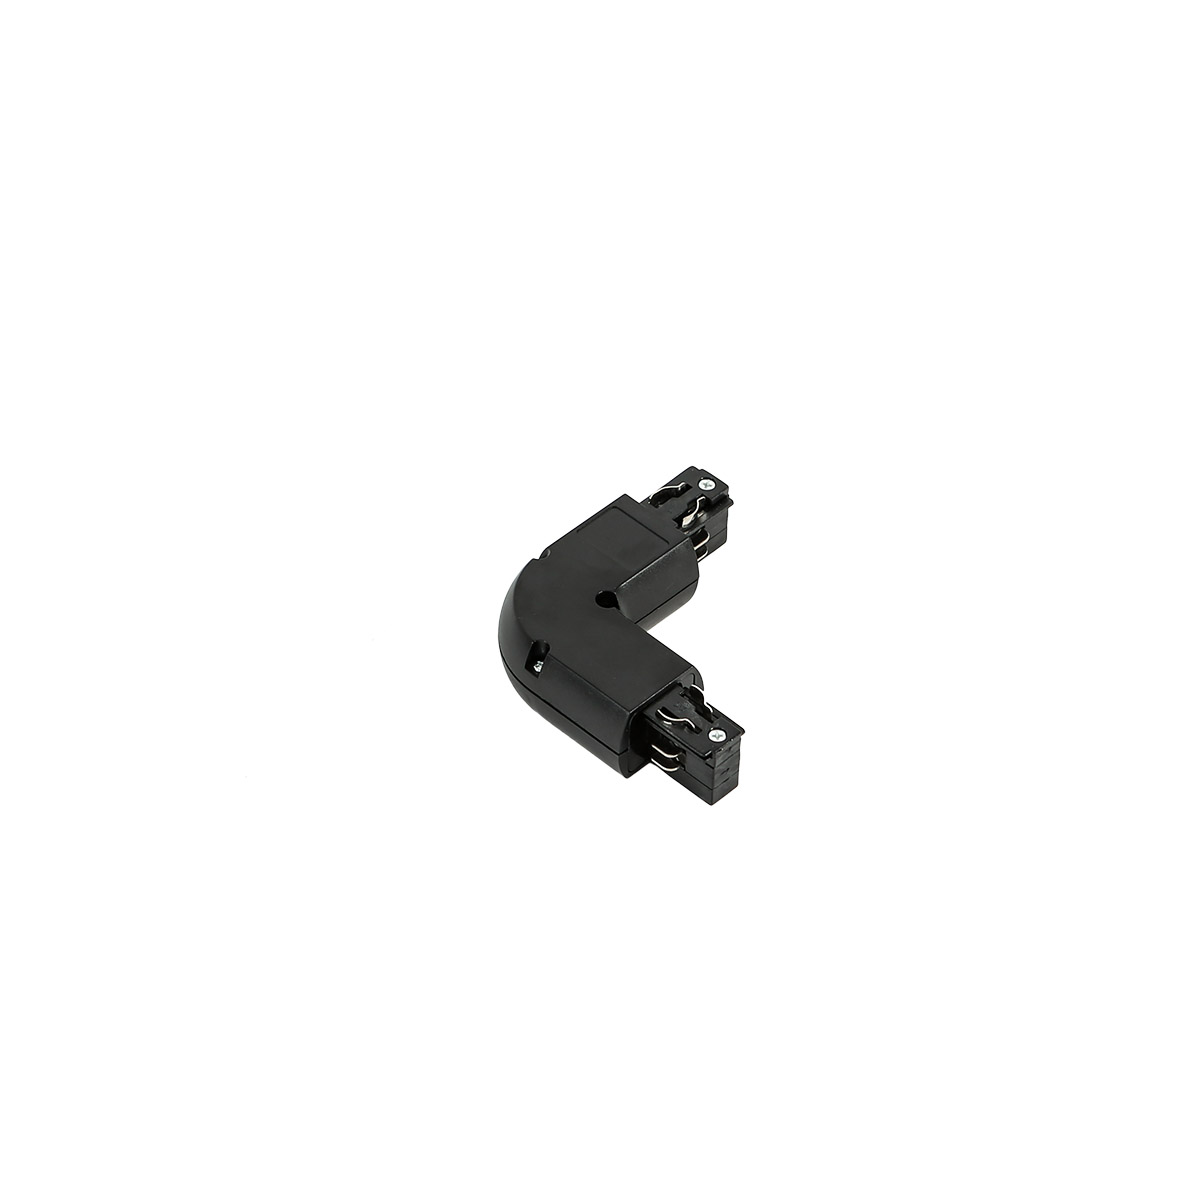 TR-L-JOINT-BL 4 phase track - L joint - black